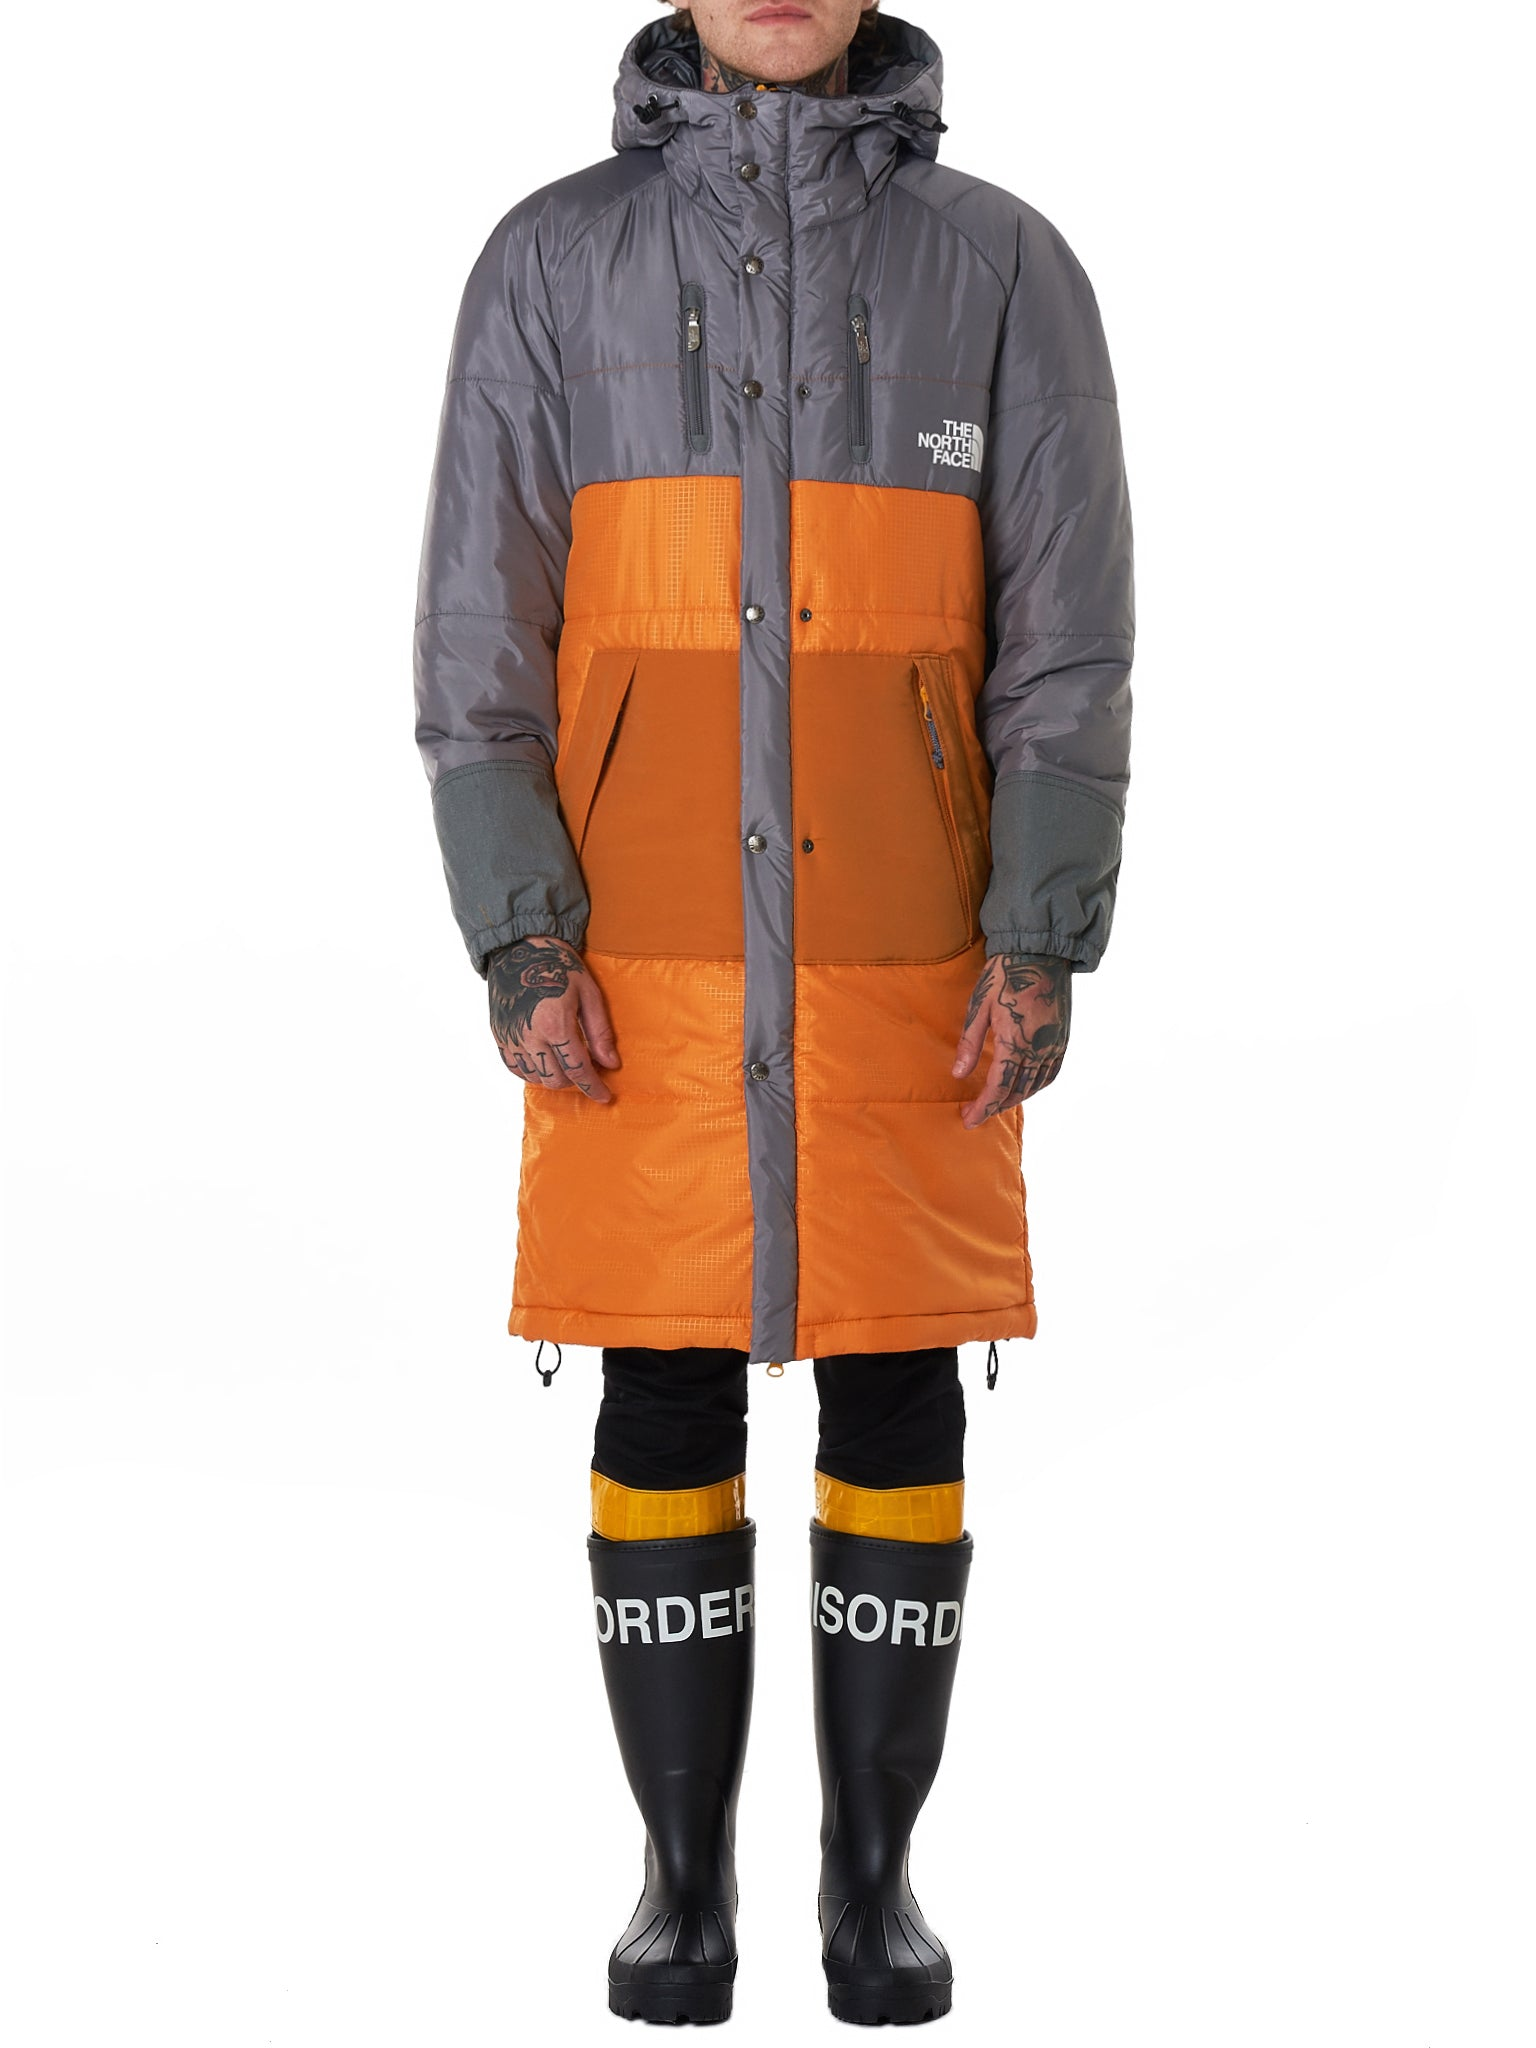 b7f164480 The North Face® Dolomite Coat (WB-C101-051-1)